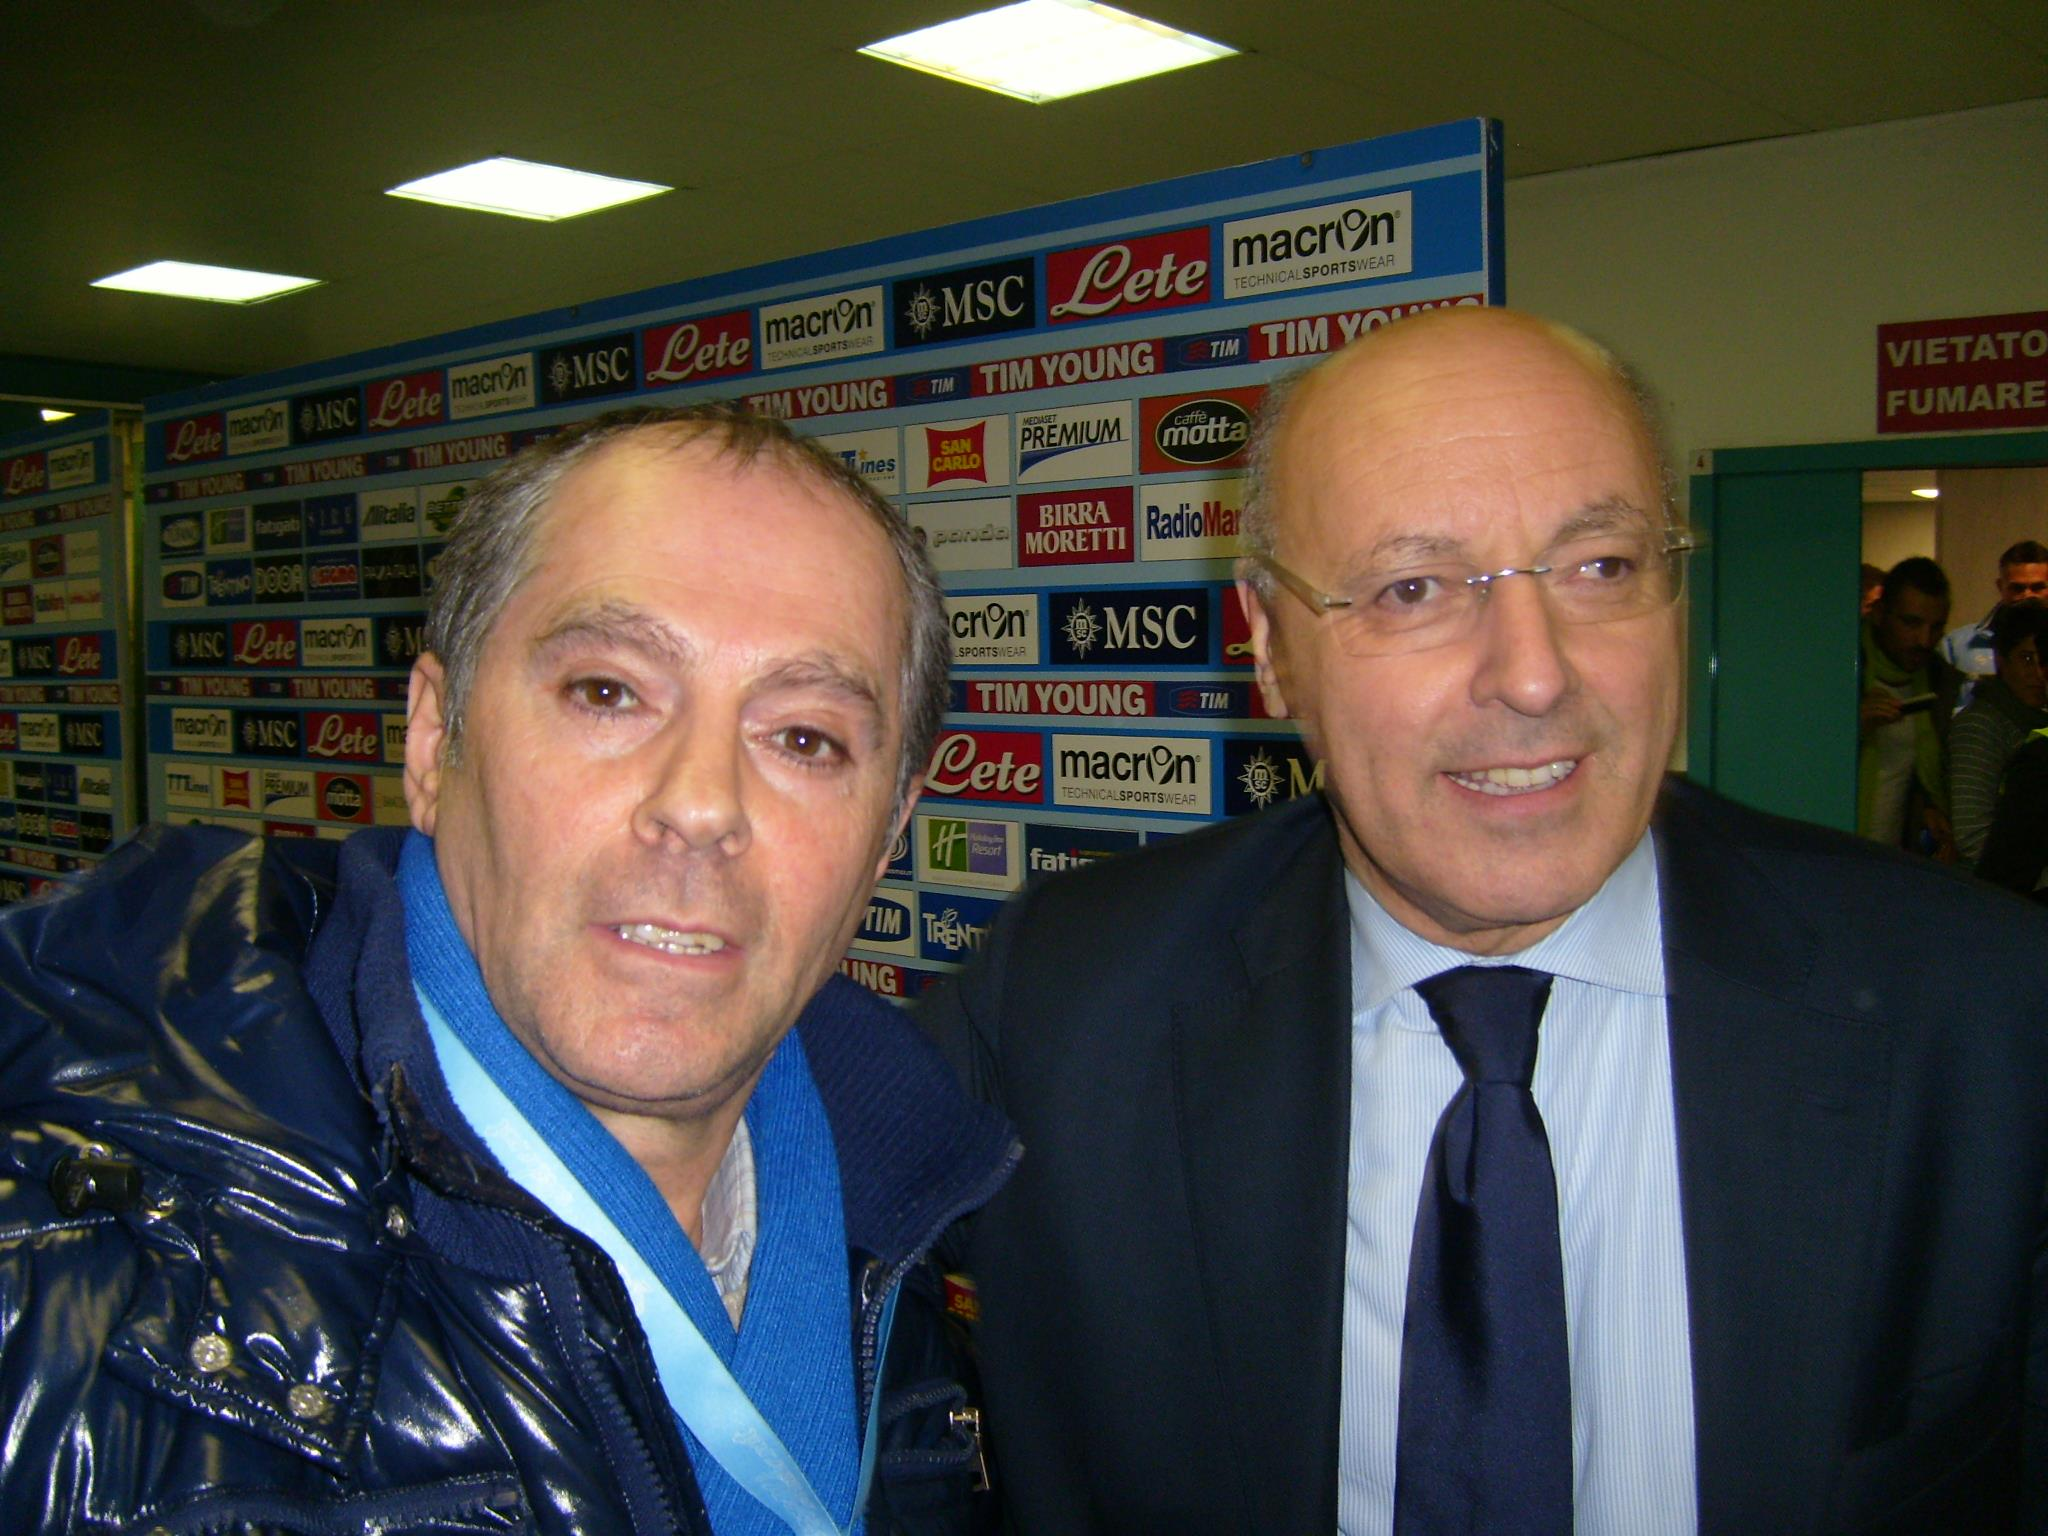 MAROTTA